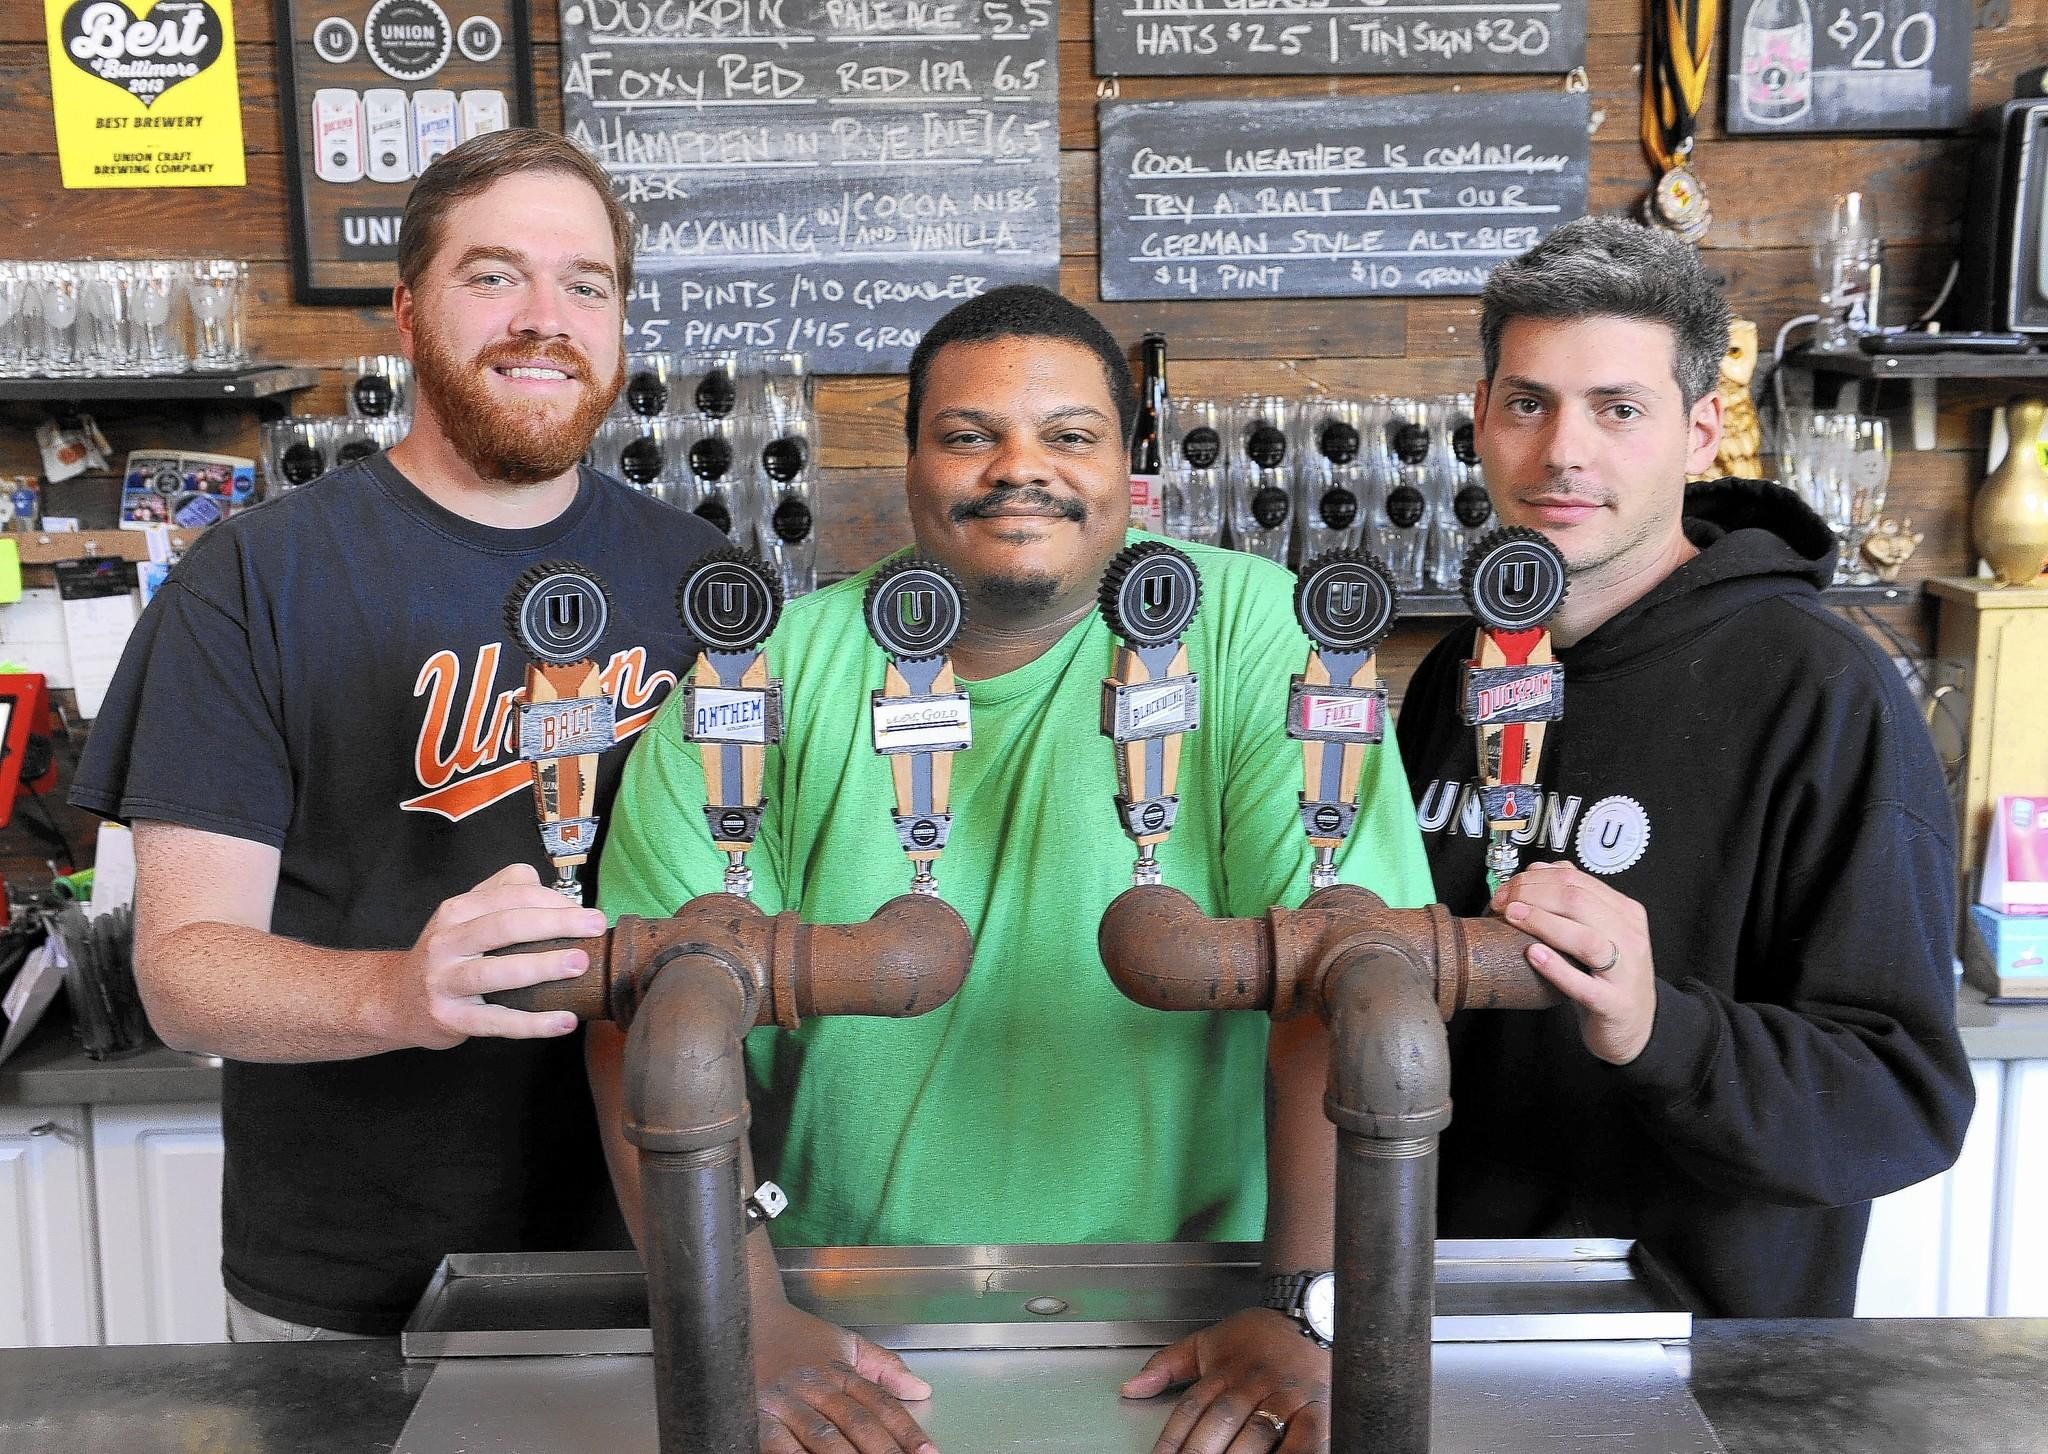 The founders of Union Craft Brewing Company. Left to right: Adam Benesch, Kevin Blodger and Jon Zerivitz.